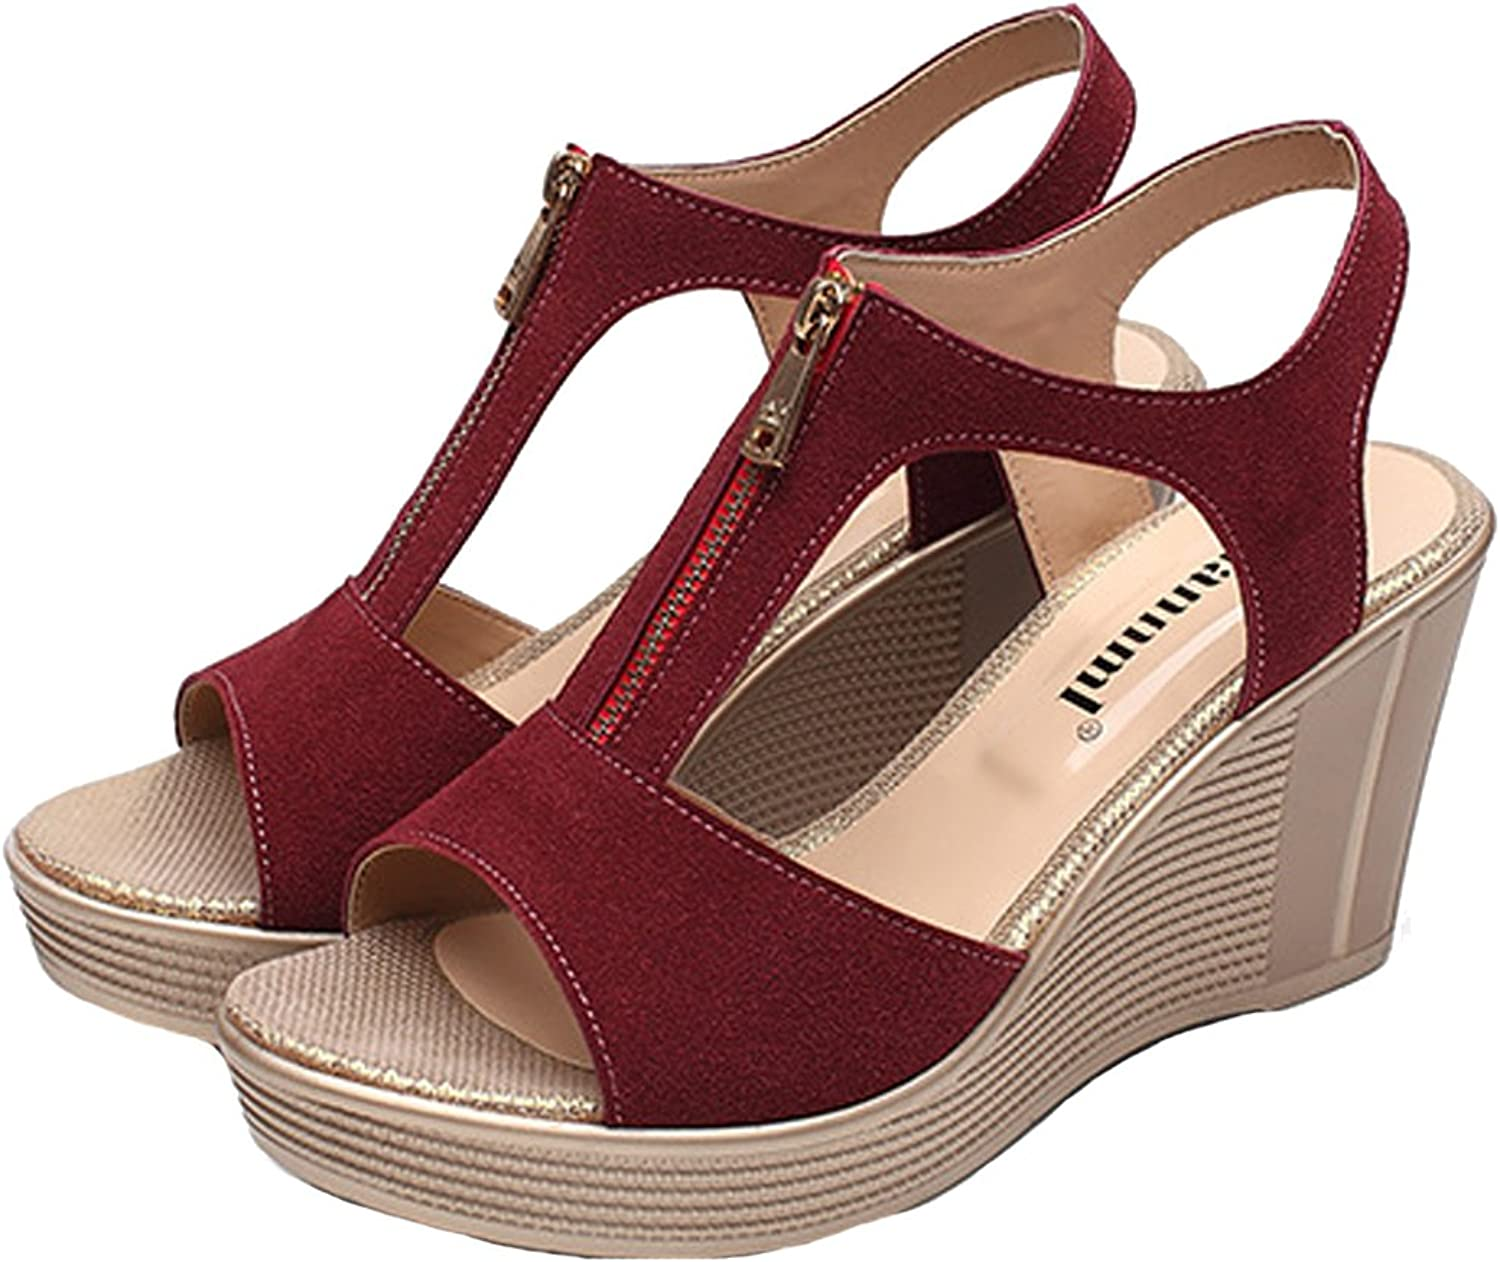 Women's T-Strap Zip Wedge Sandals